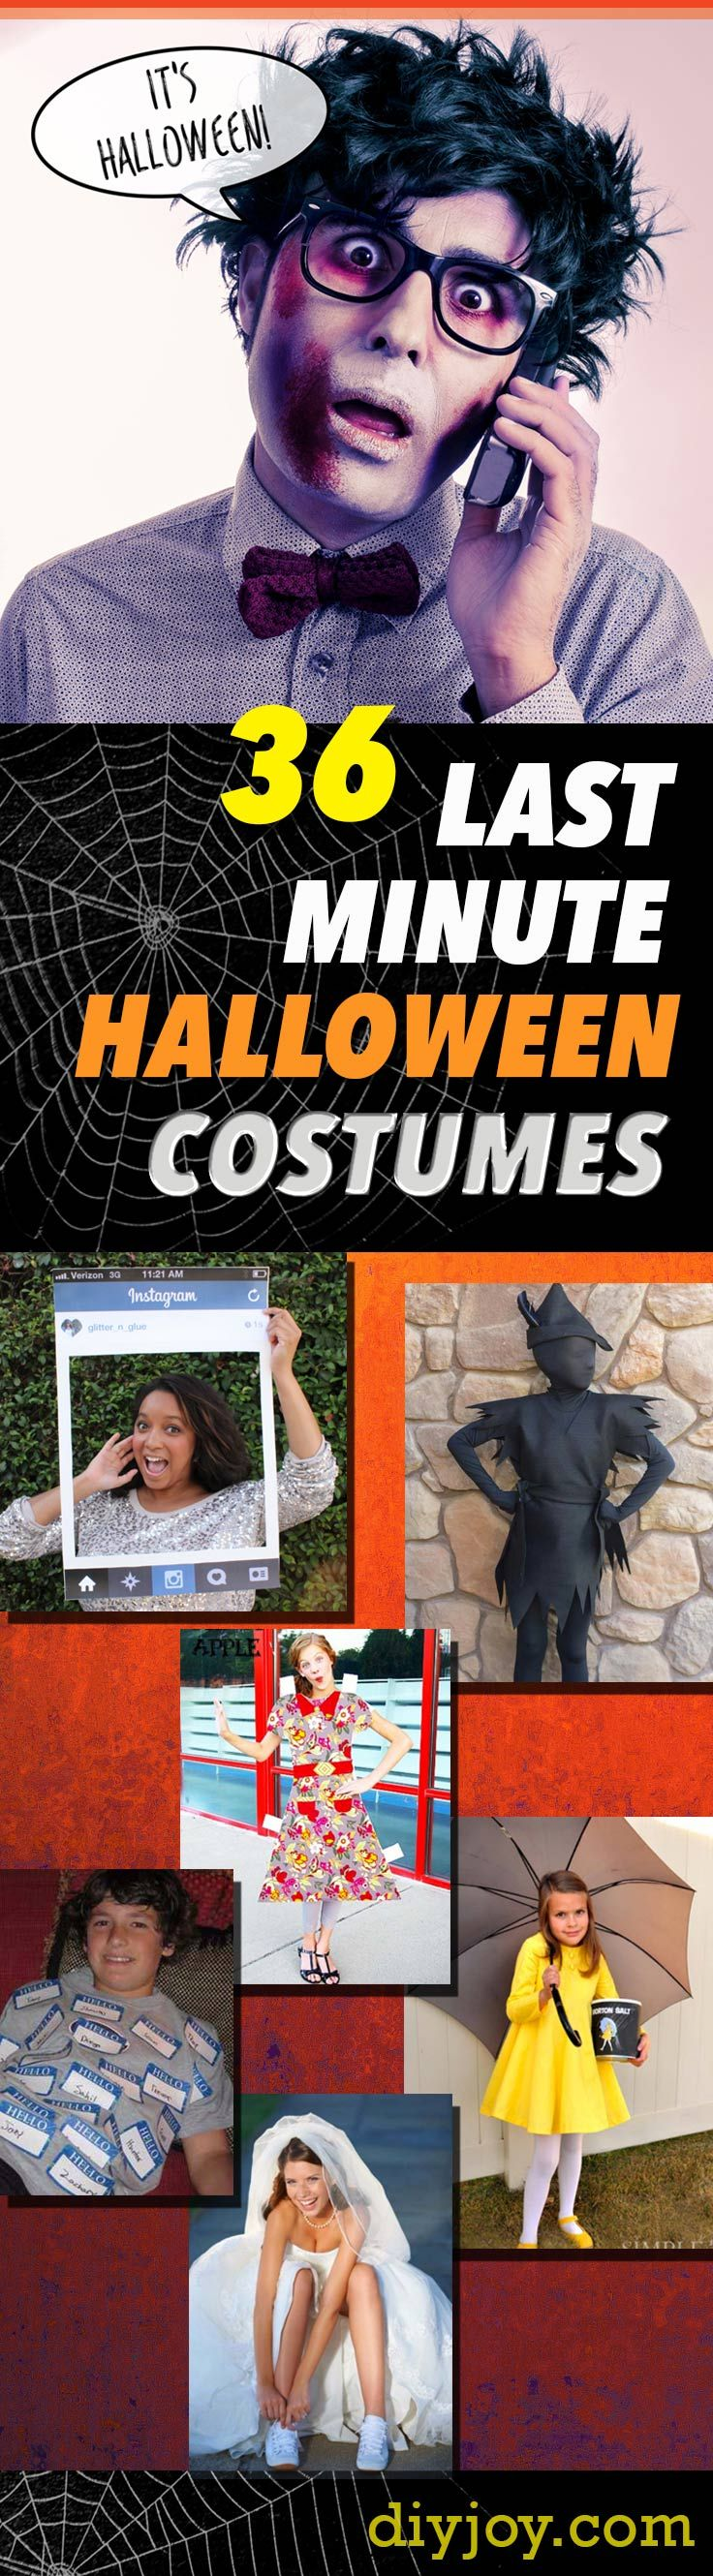 17 best images about fall prep on pinterest diy halloween costumes pumpkins and fall porches. Black Bedroom Furniture Sets. Home Design Ideas